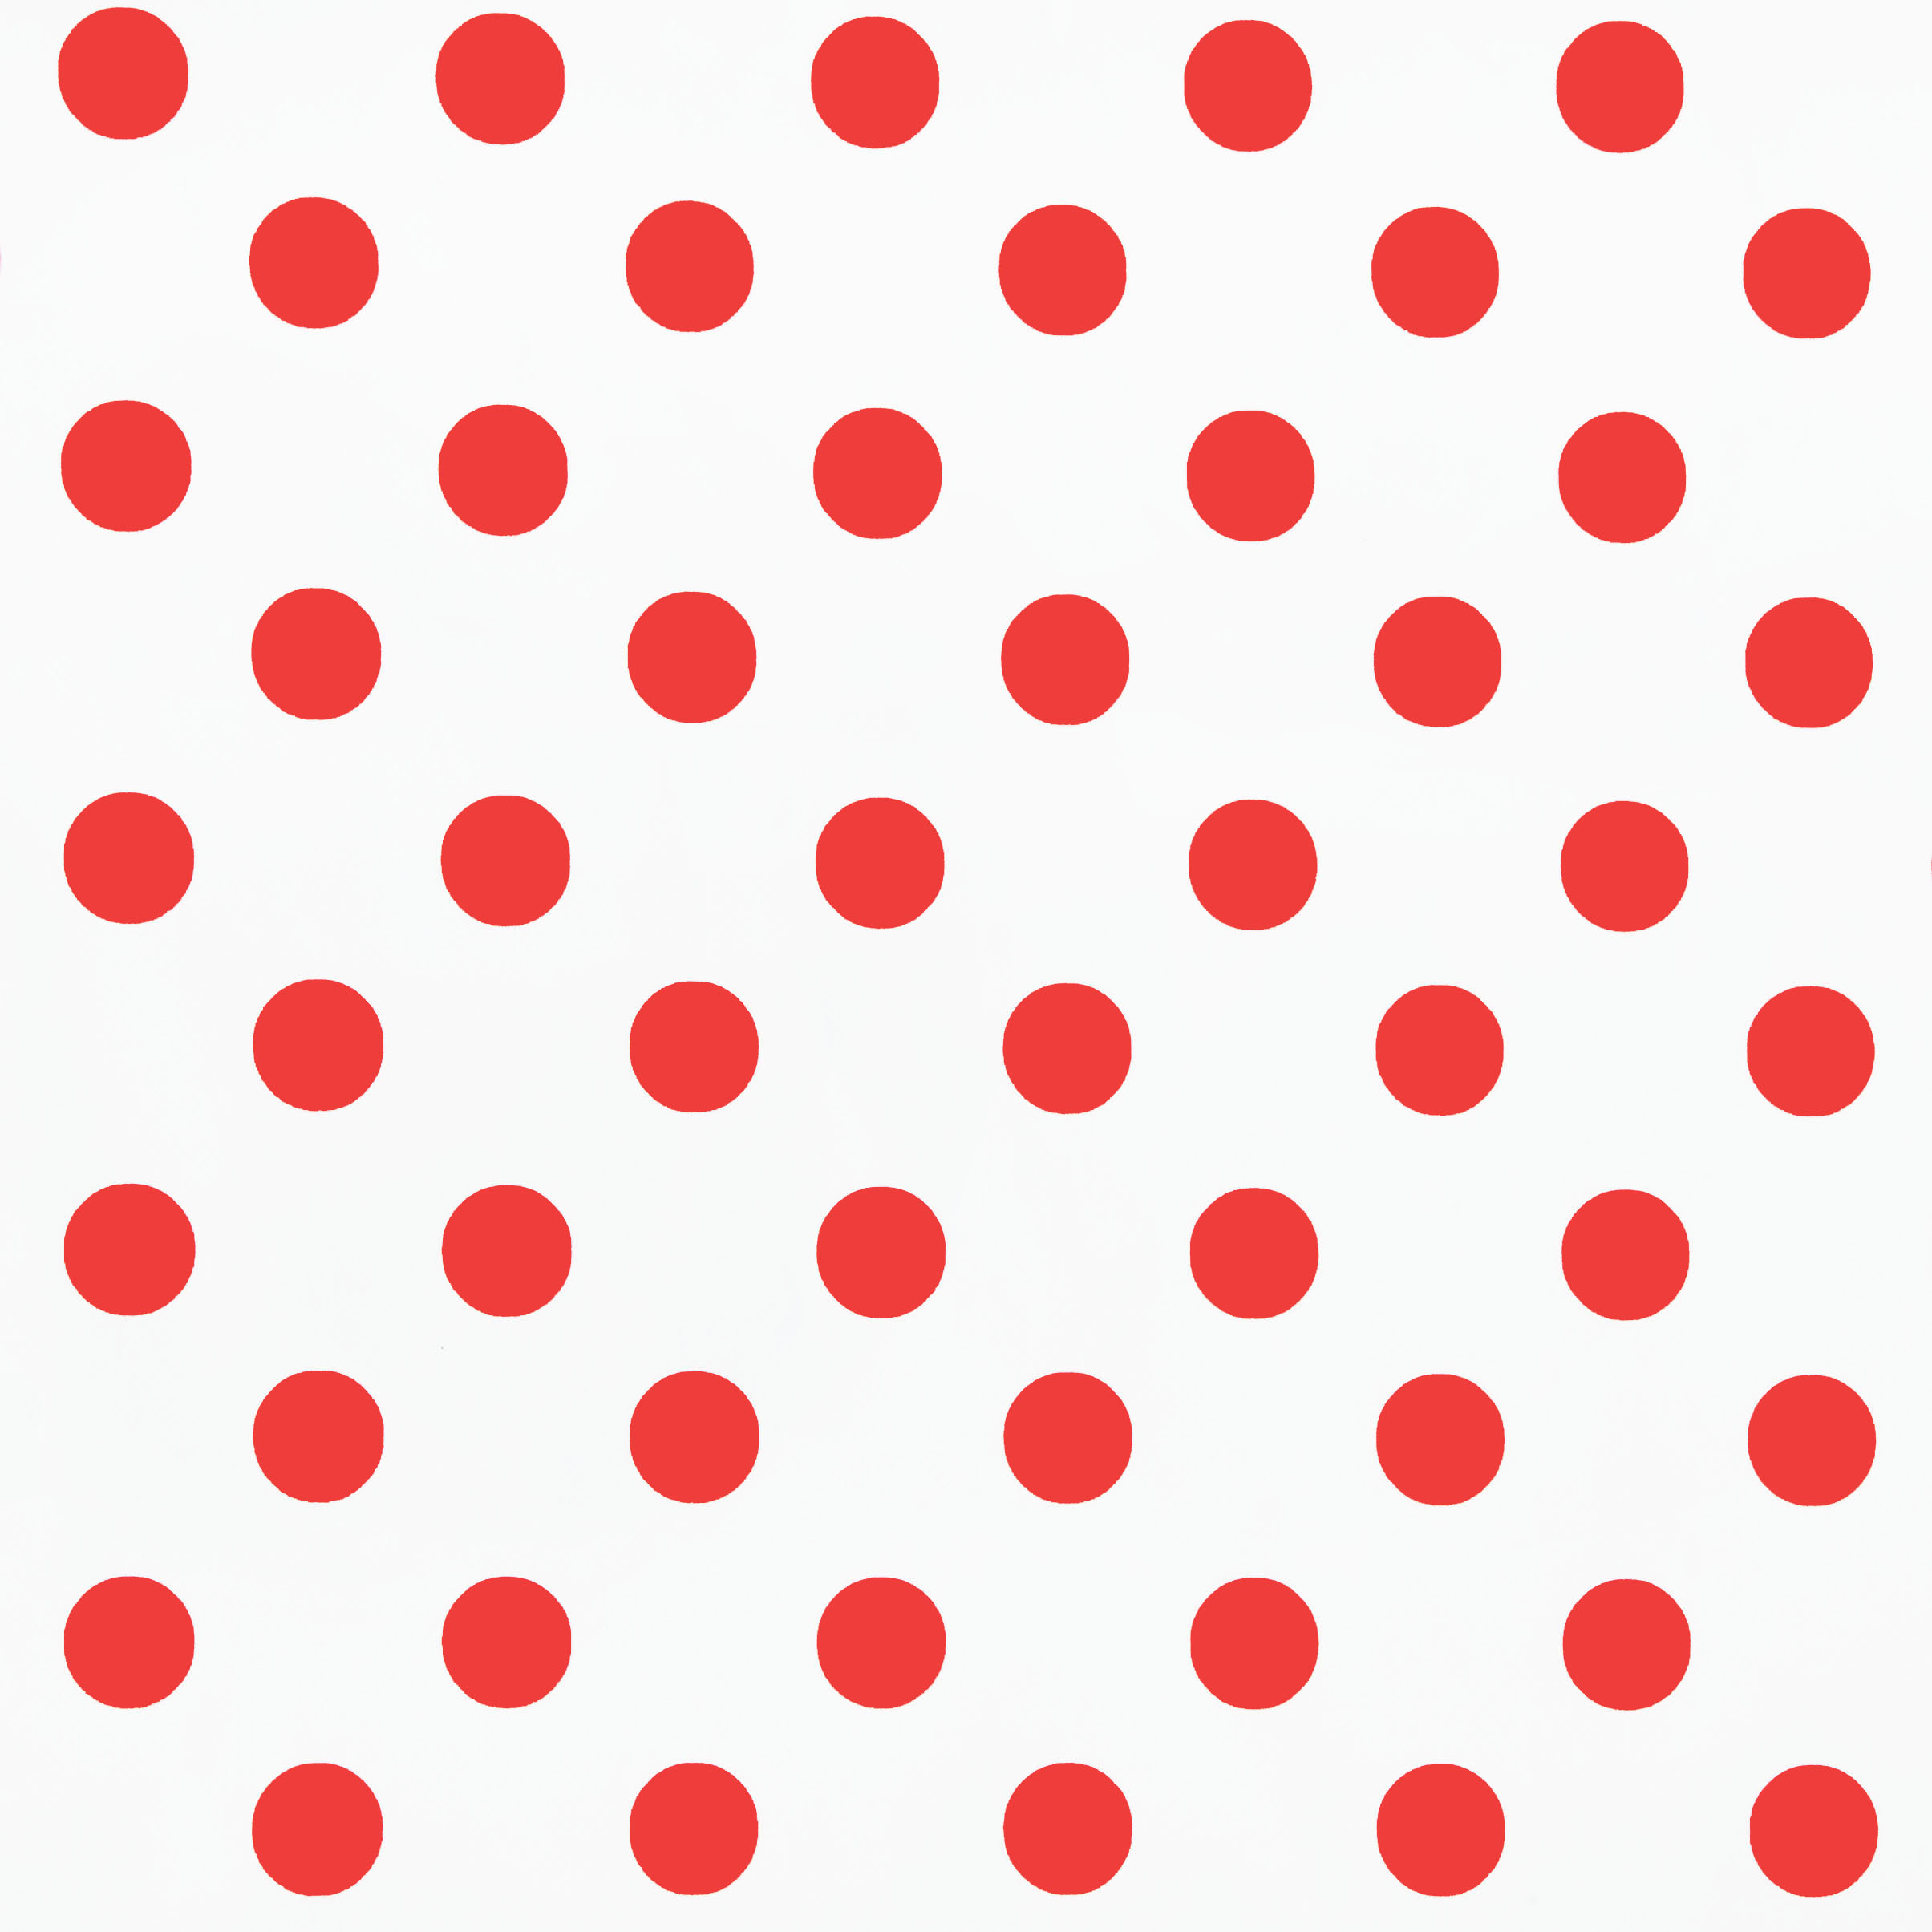 Free Polka Dot, Download Free Clip Art, Free Clip Art on.